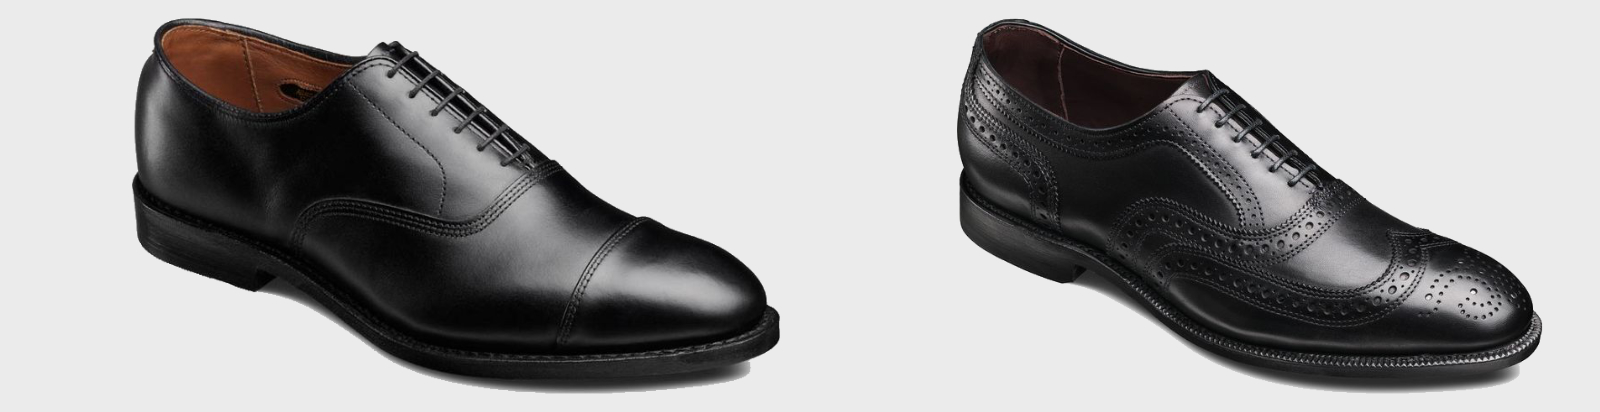 Cap Toe Oxford and Wingtip Oxford